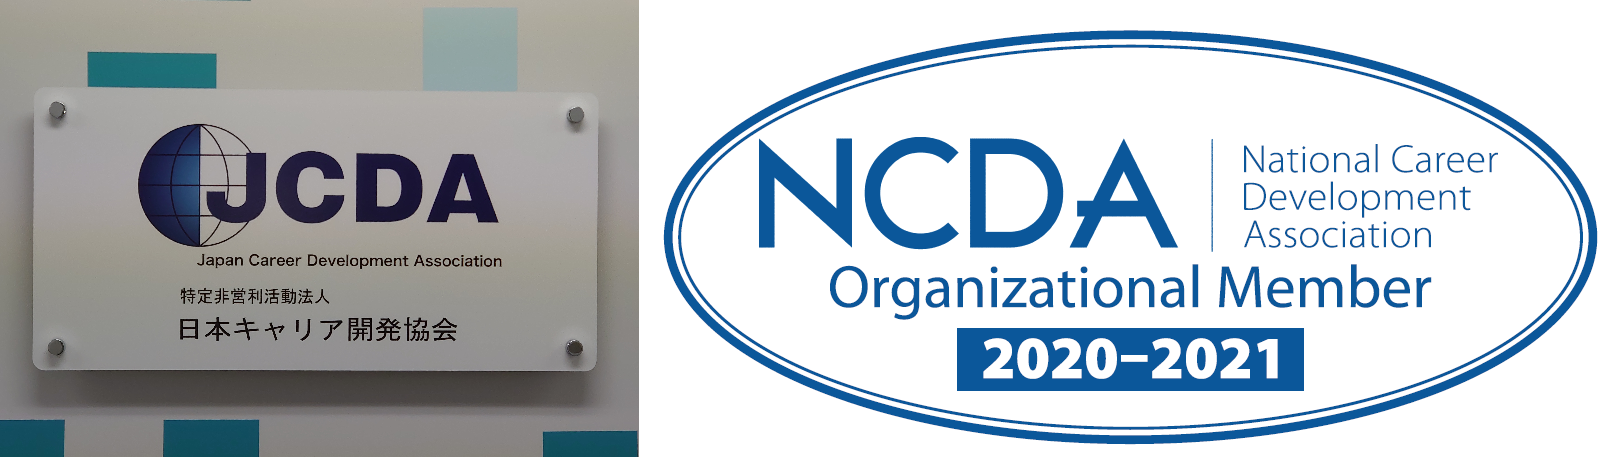 Message from Dr. Seth Hayden, President of NCDA